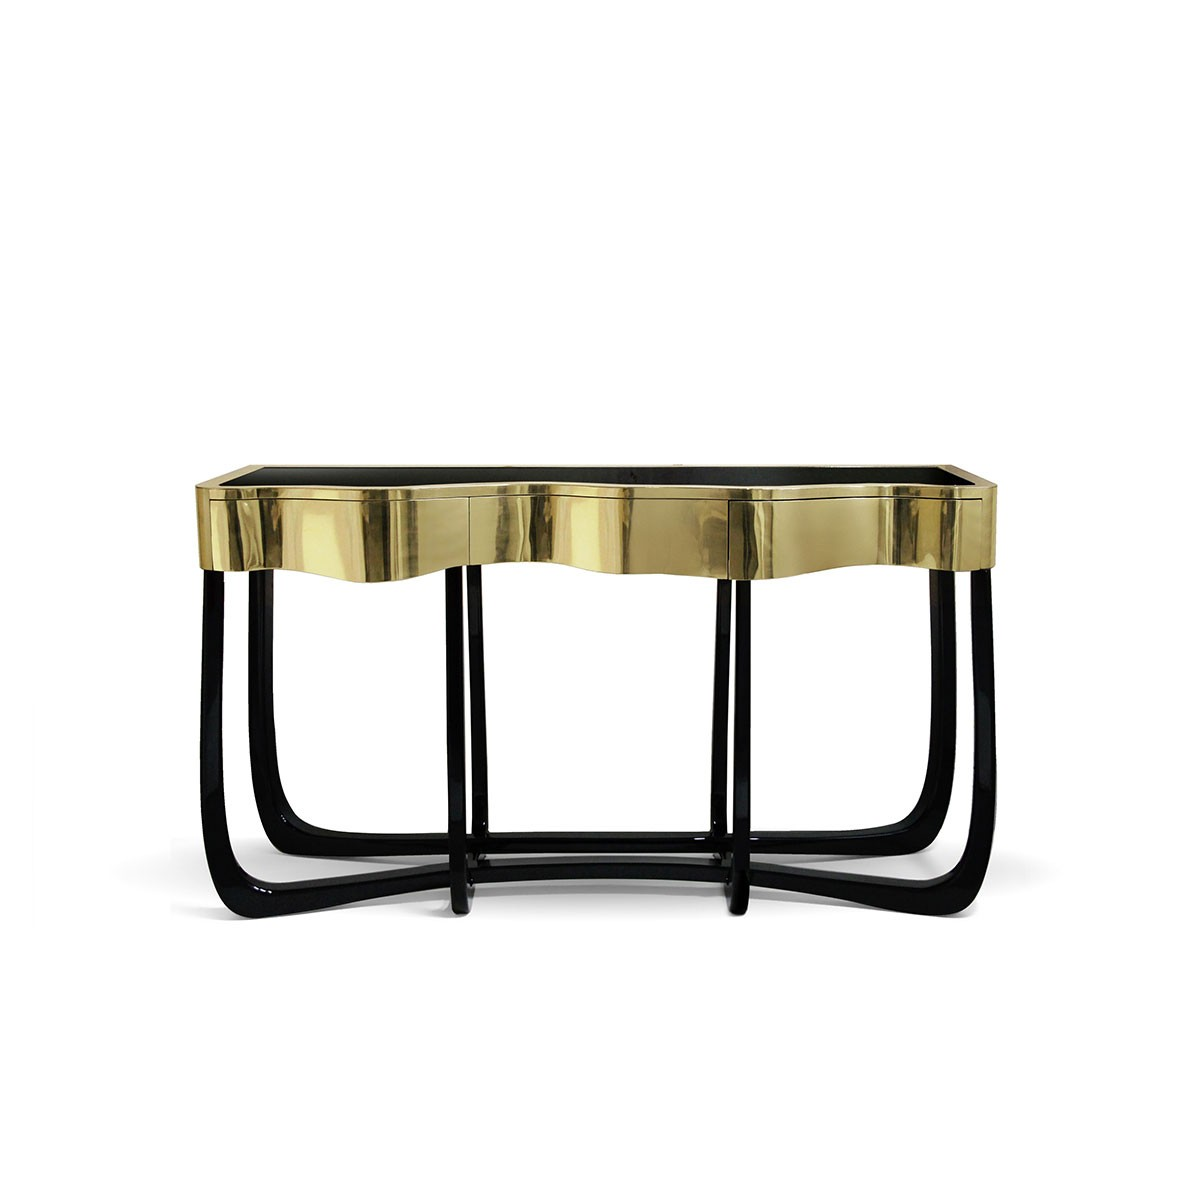 trendy console tables Trendy Console Tables For 2019 (Part II) sinuous